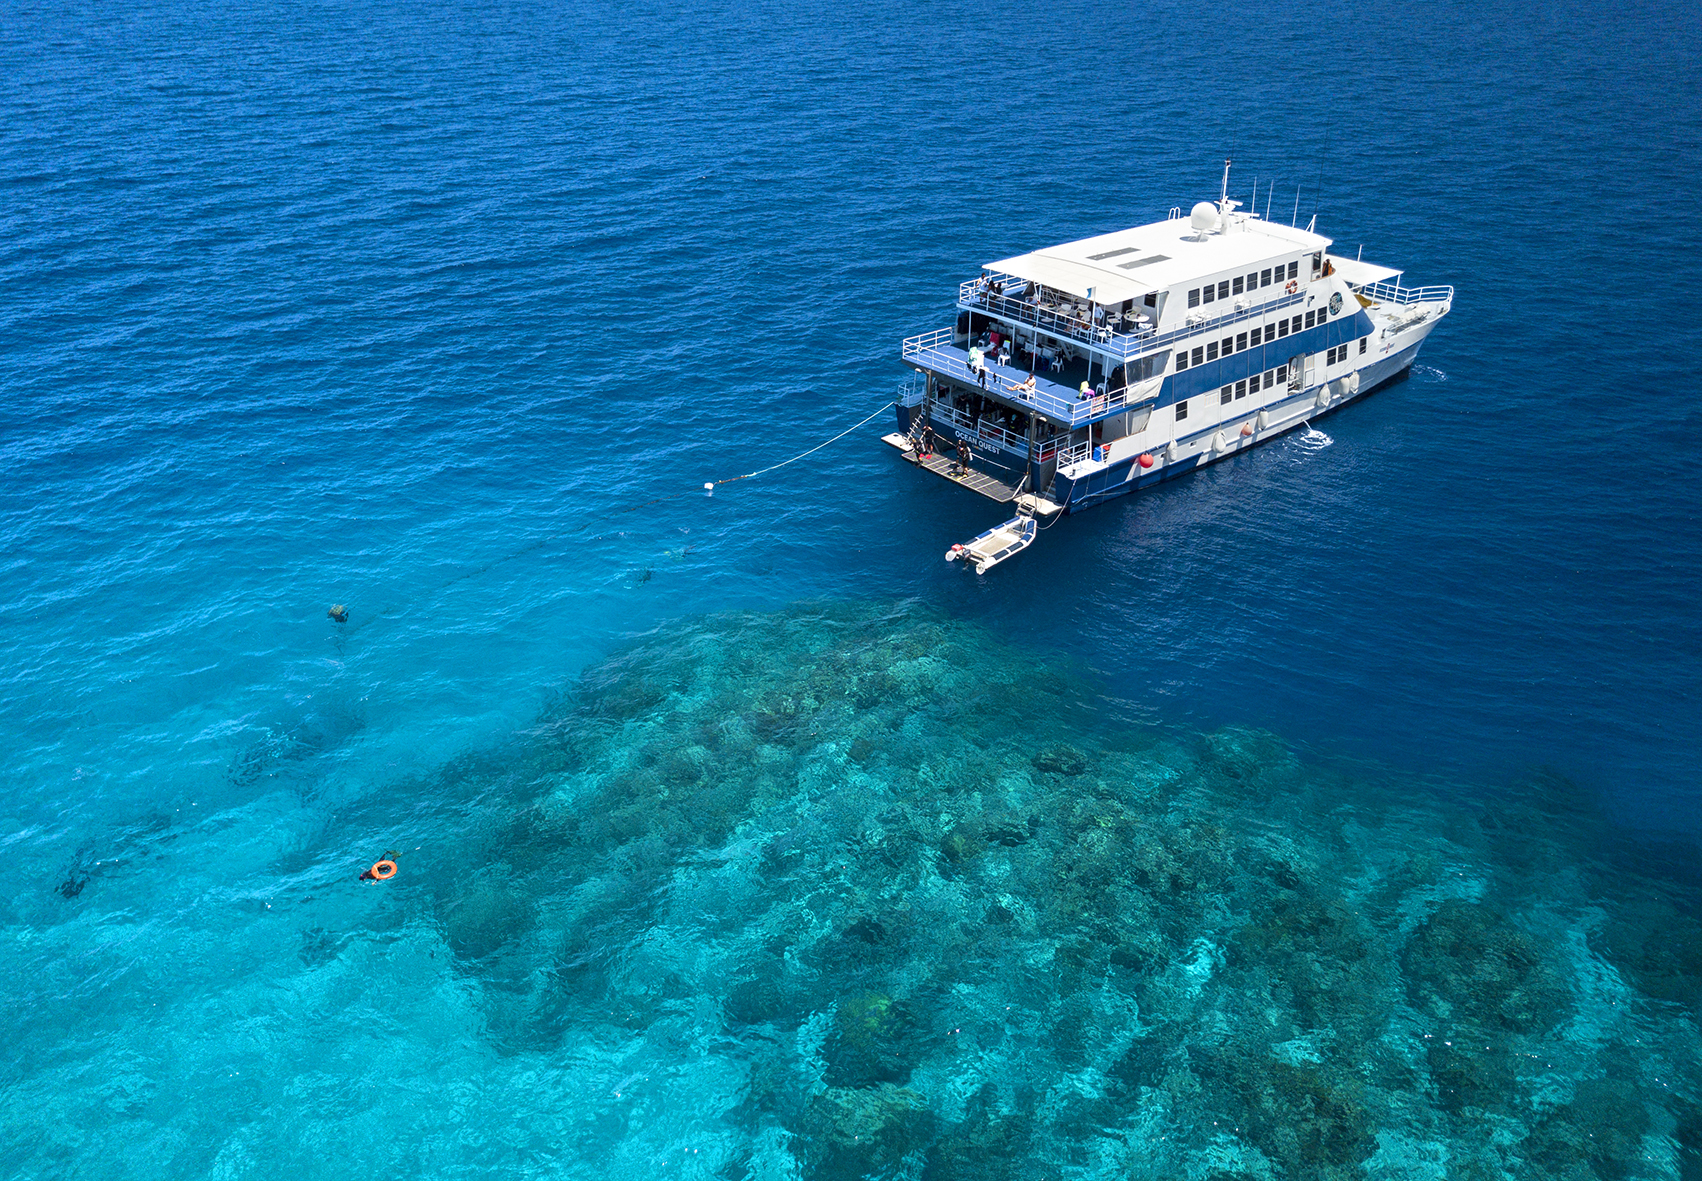 OceanQuest Liveaboard Trips to the Outer Great Barrier Reef from Cairns Our Liveaboard OceanQuest caters to Snorkelers, Certified and Introductory Divers